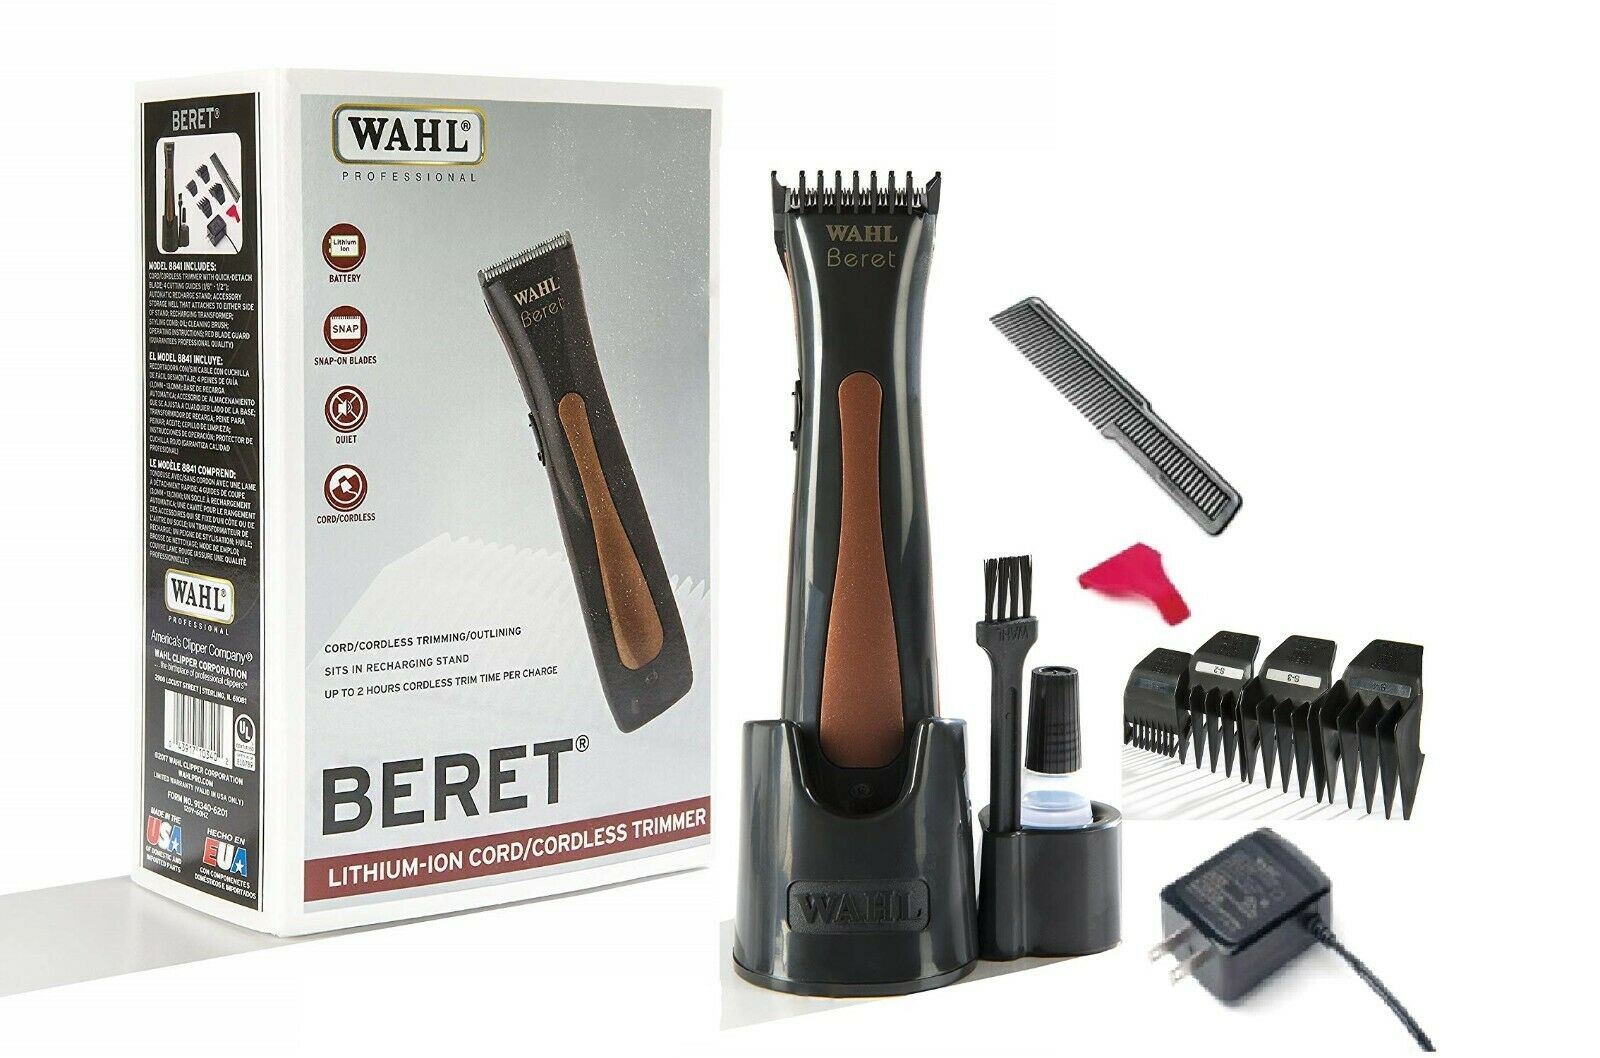 Wahl Professional Beret Lithium Ion Cord/Cordless Trimmer #